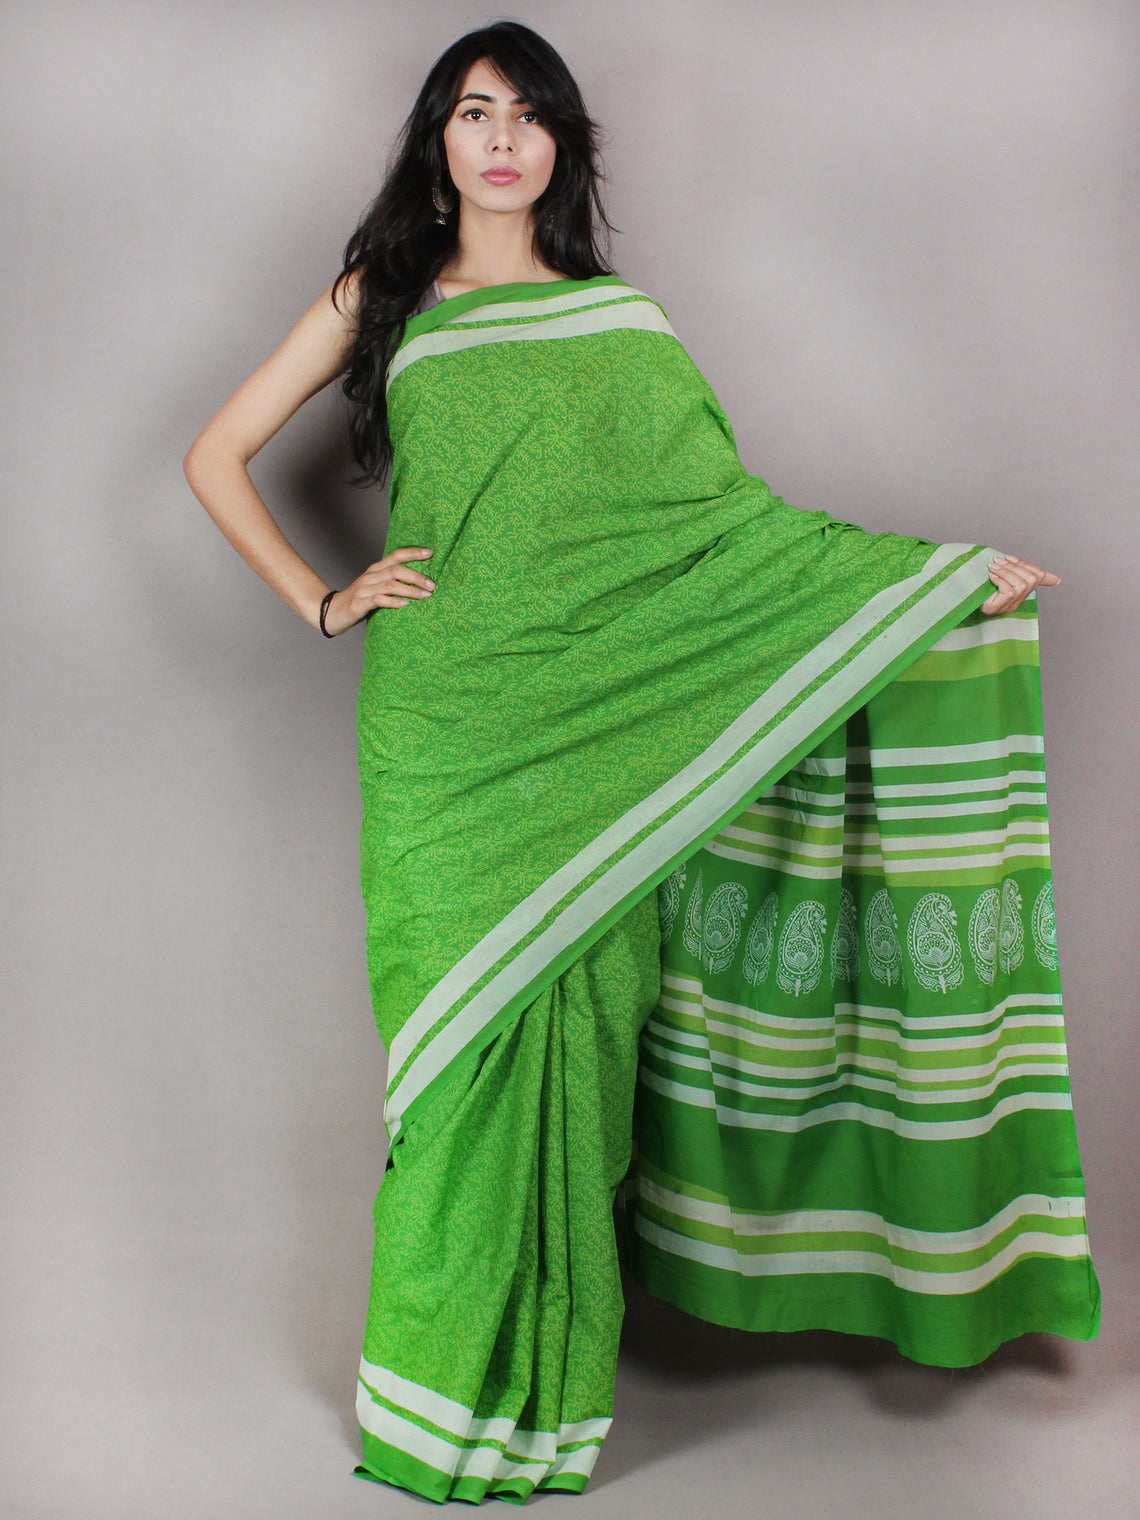 Pear Green White Hand Block Printed in Natural Colors Cotton Mul Saree - S03170733